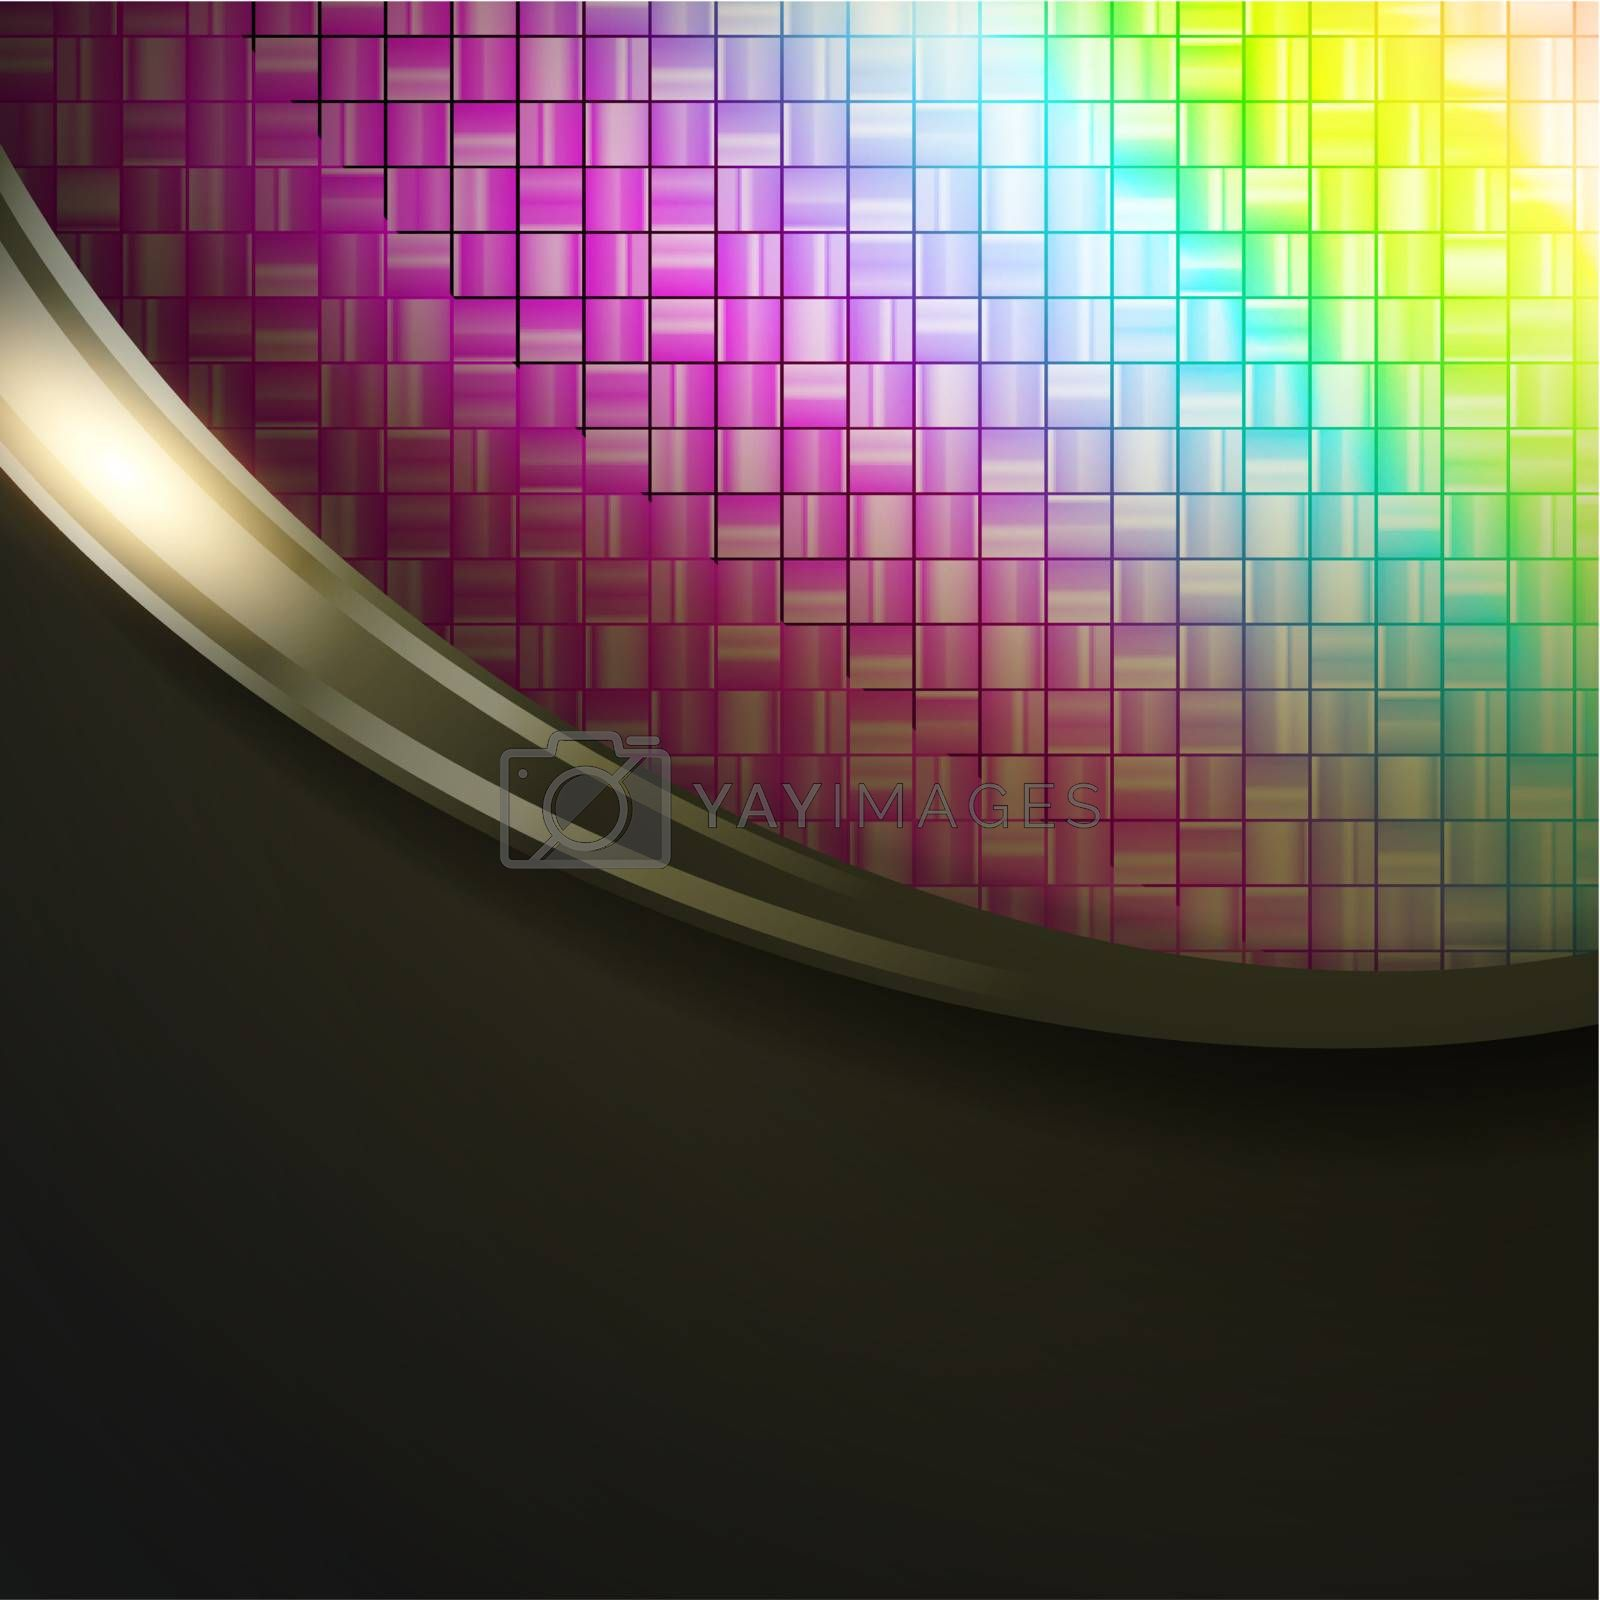 multicolored absract mosic background in frame, copyspace for your text